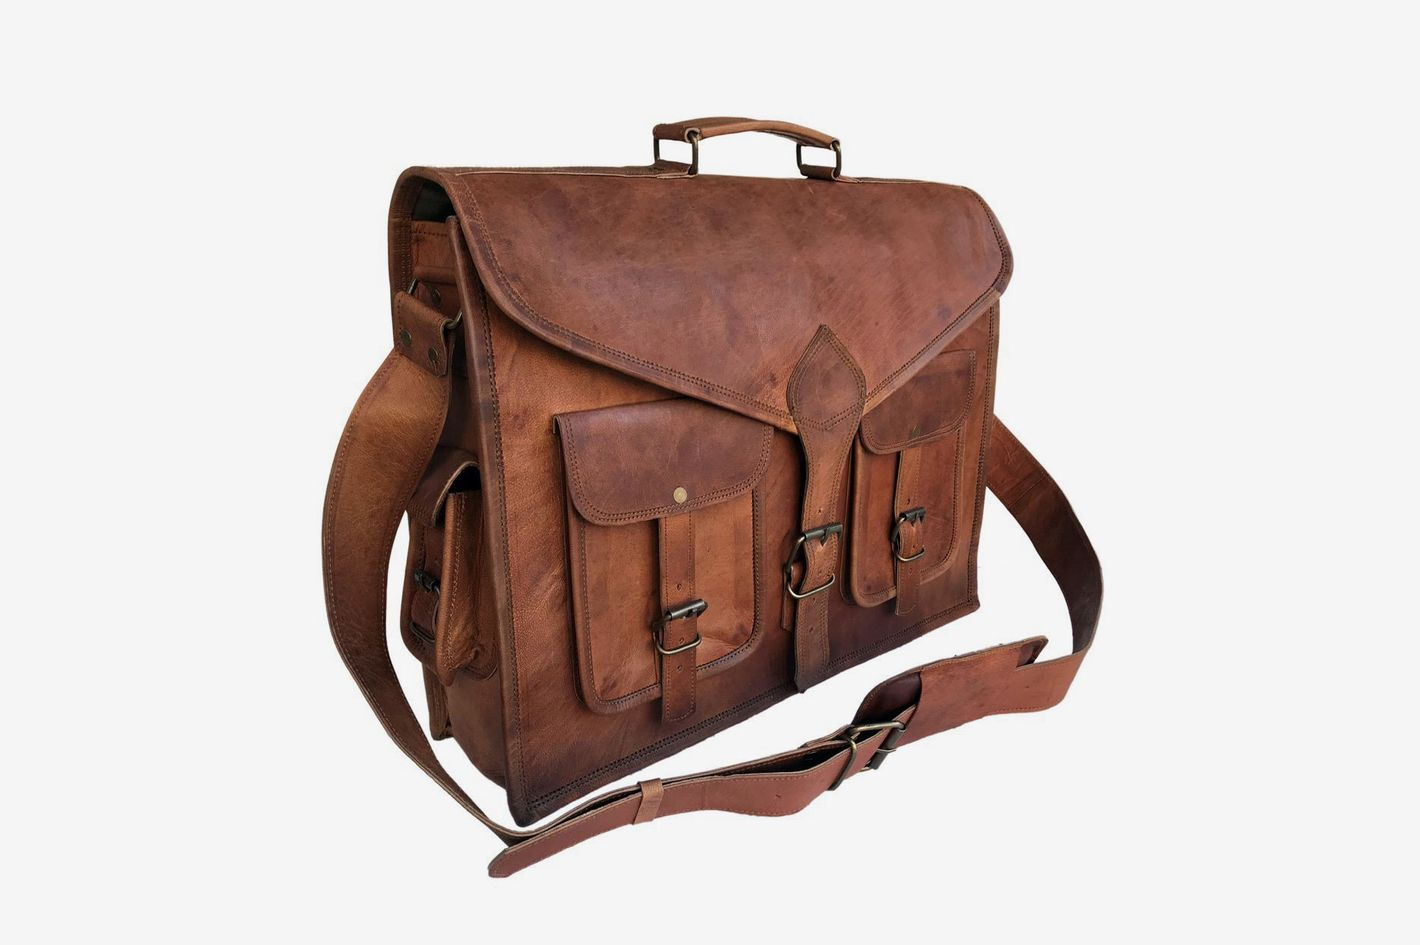 Komal's Passion Leather Rustic Vintage Leather Messenger Bag